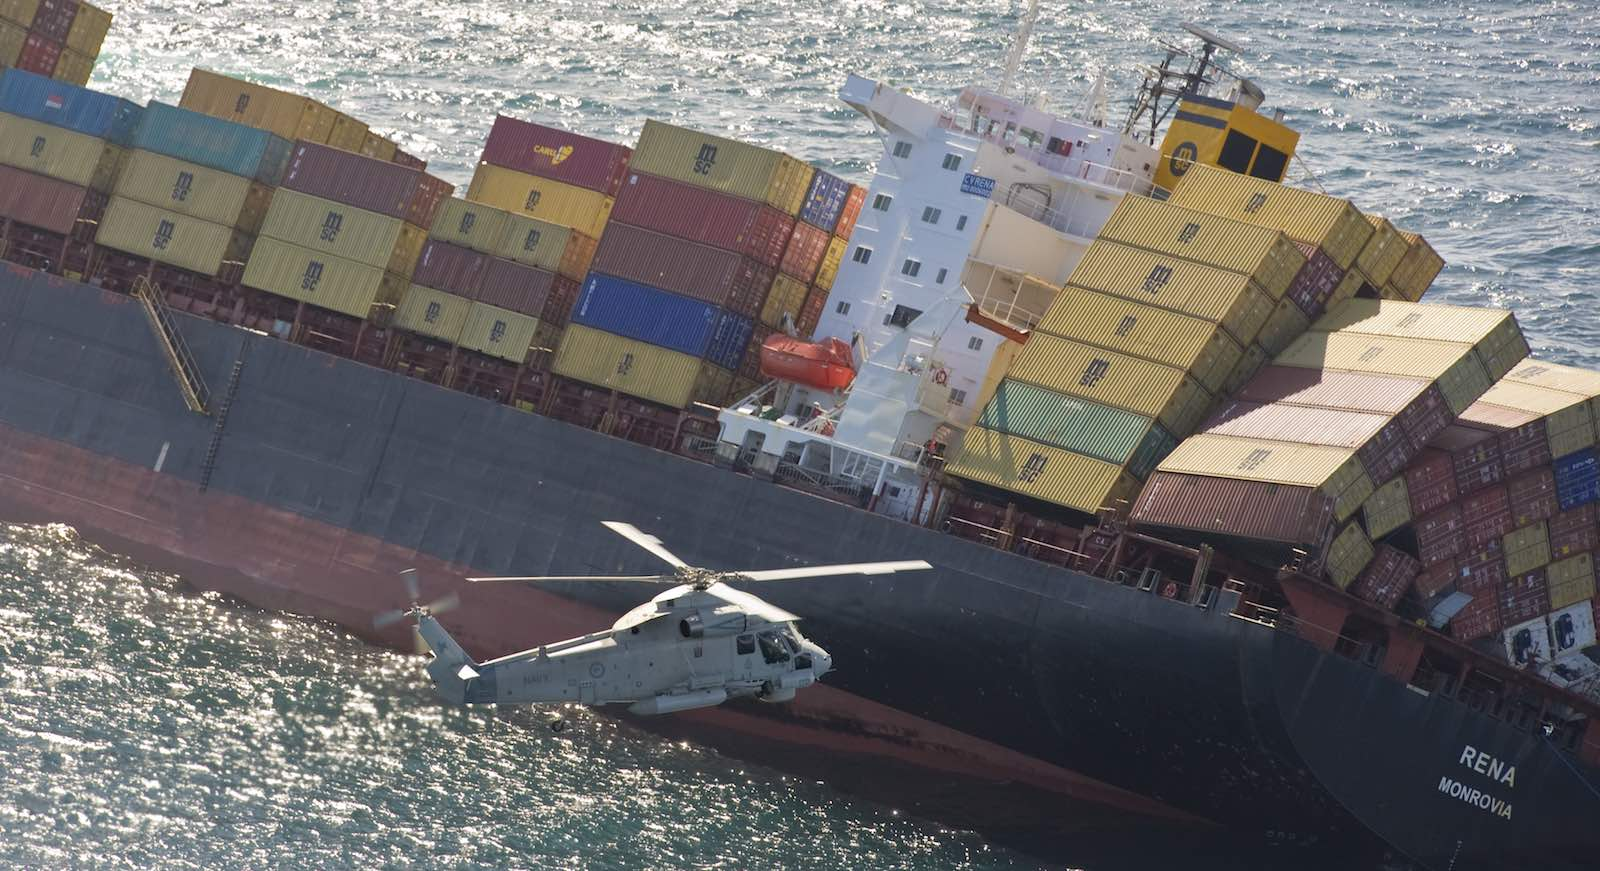 Rescue efforts for the grounded container ship Rena off New Zealand, 2011 (Photo: NZDF/Flickr)